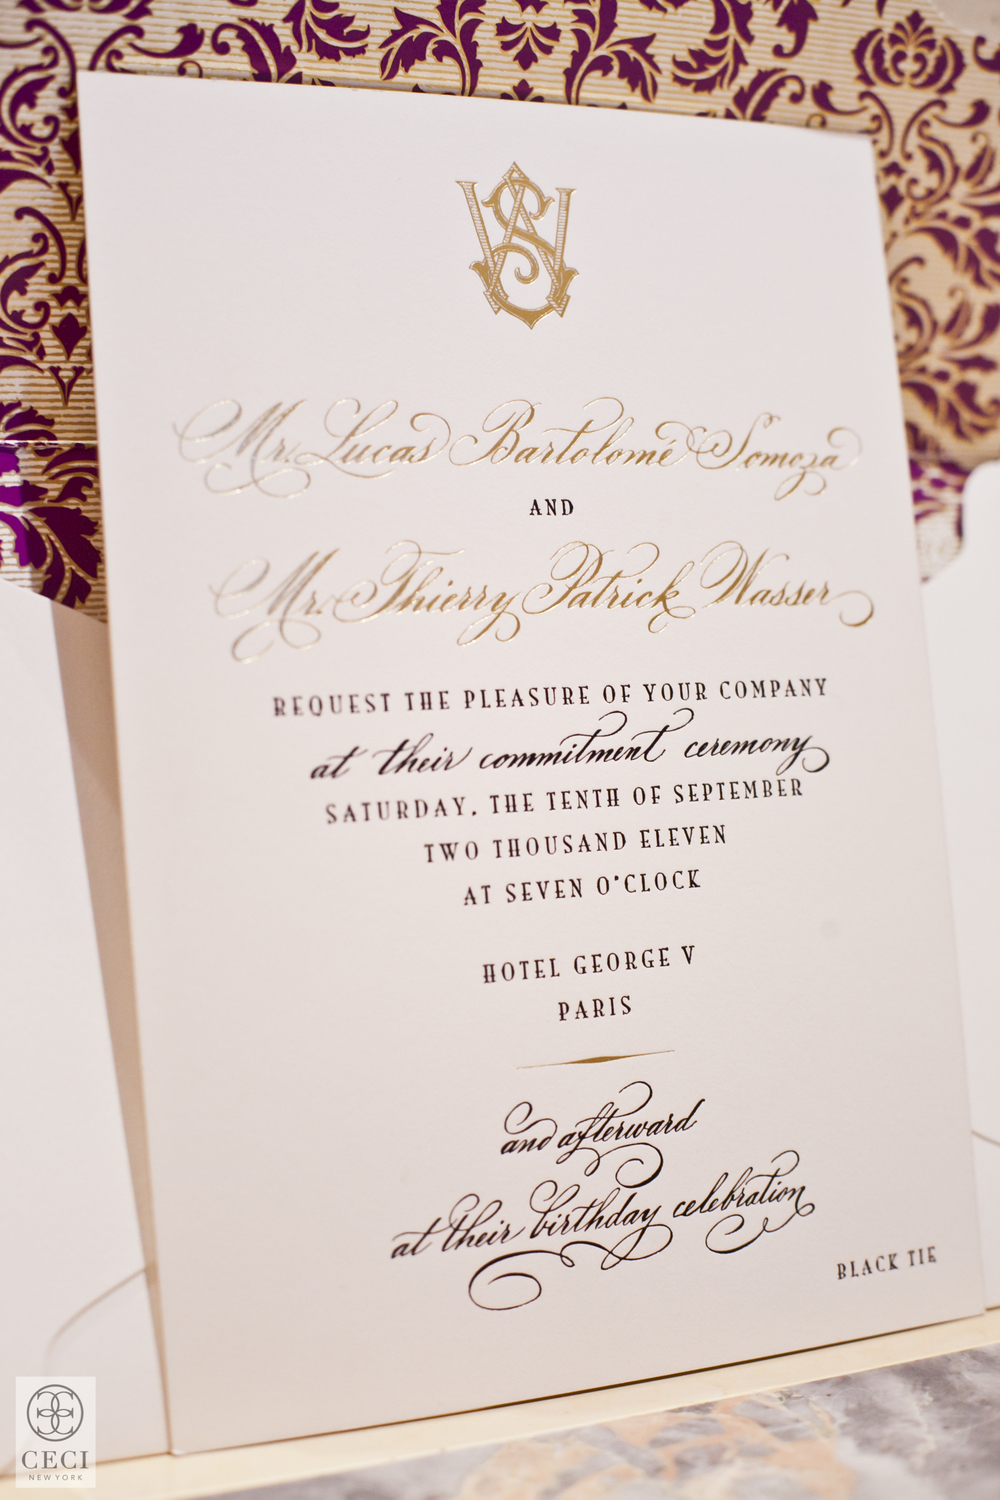 ceci_new_york_lucas_somoza_purple_regal_wediding_birthday_commitment_ceremony_invitation_logo_branding_perfume_gold_-12.jpg